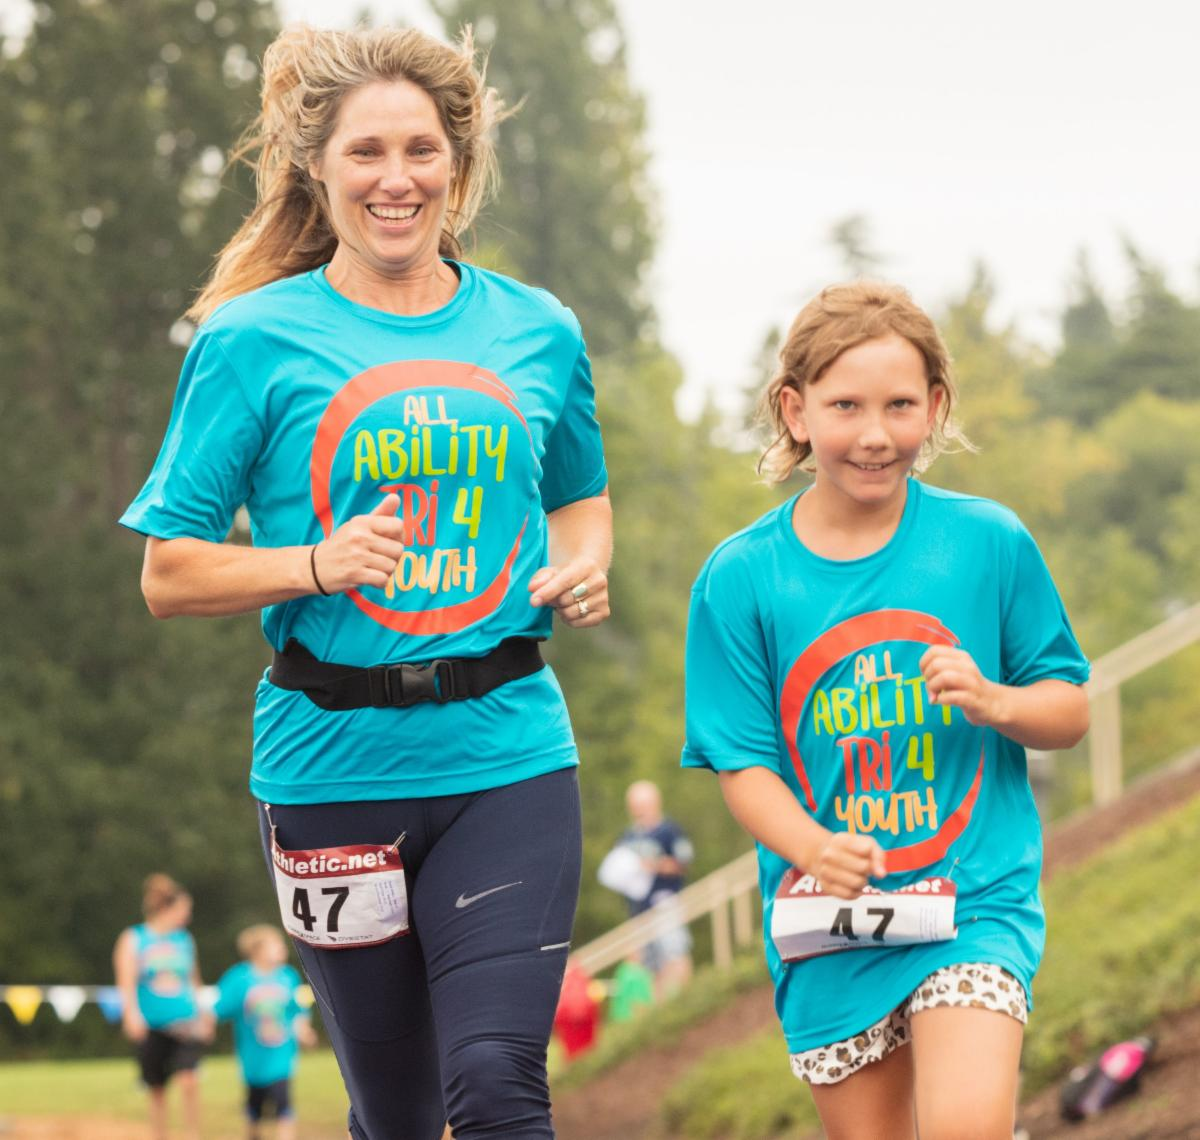 Woman and girl running together